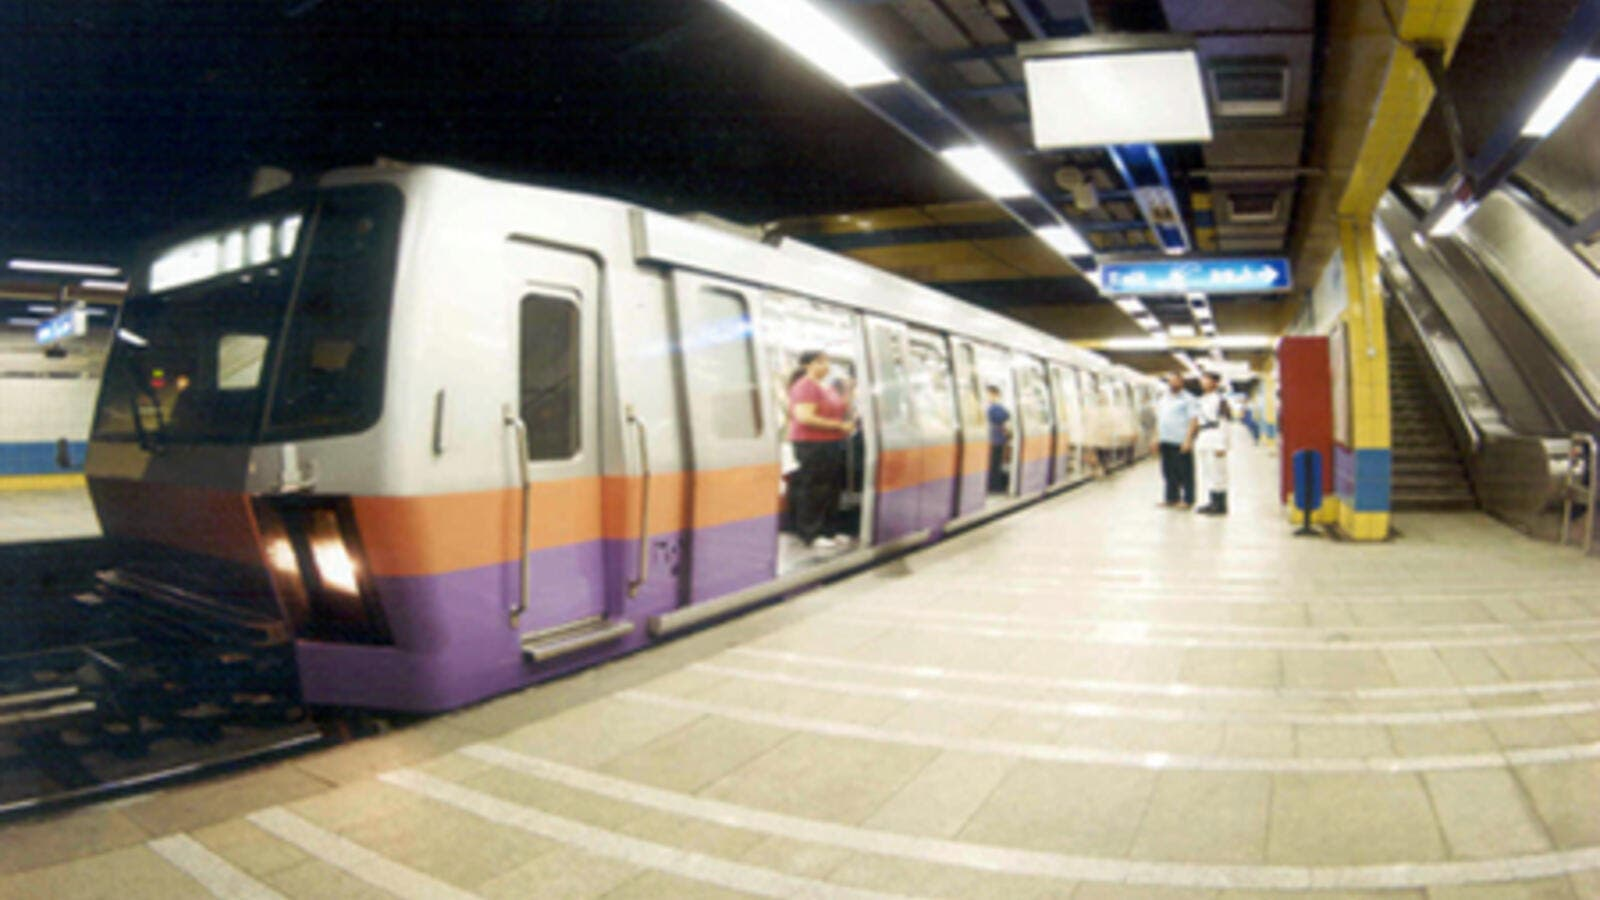 Last year, Egypt's transportation ministry announced it would double the price of Cairo's metro tickets to EGP 2 before the end of the 2016 fiscal year, but the changes were not implemented. (Wikimedia Commons)